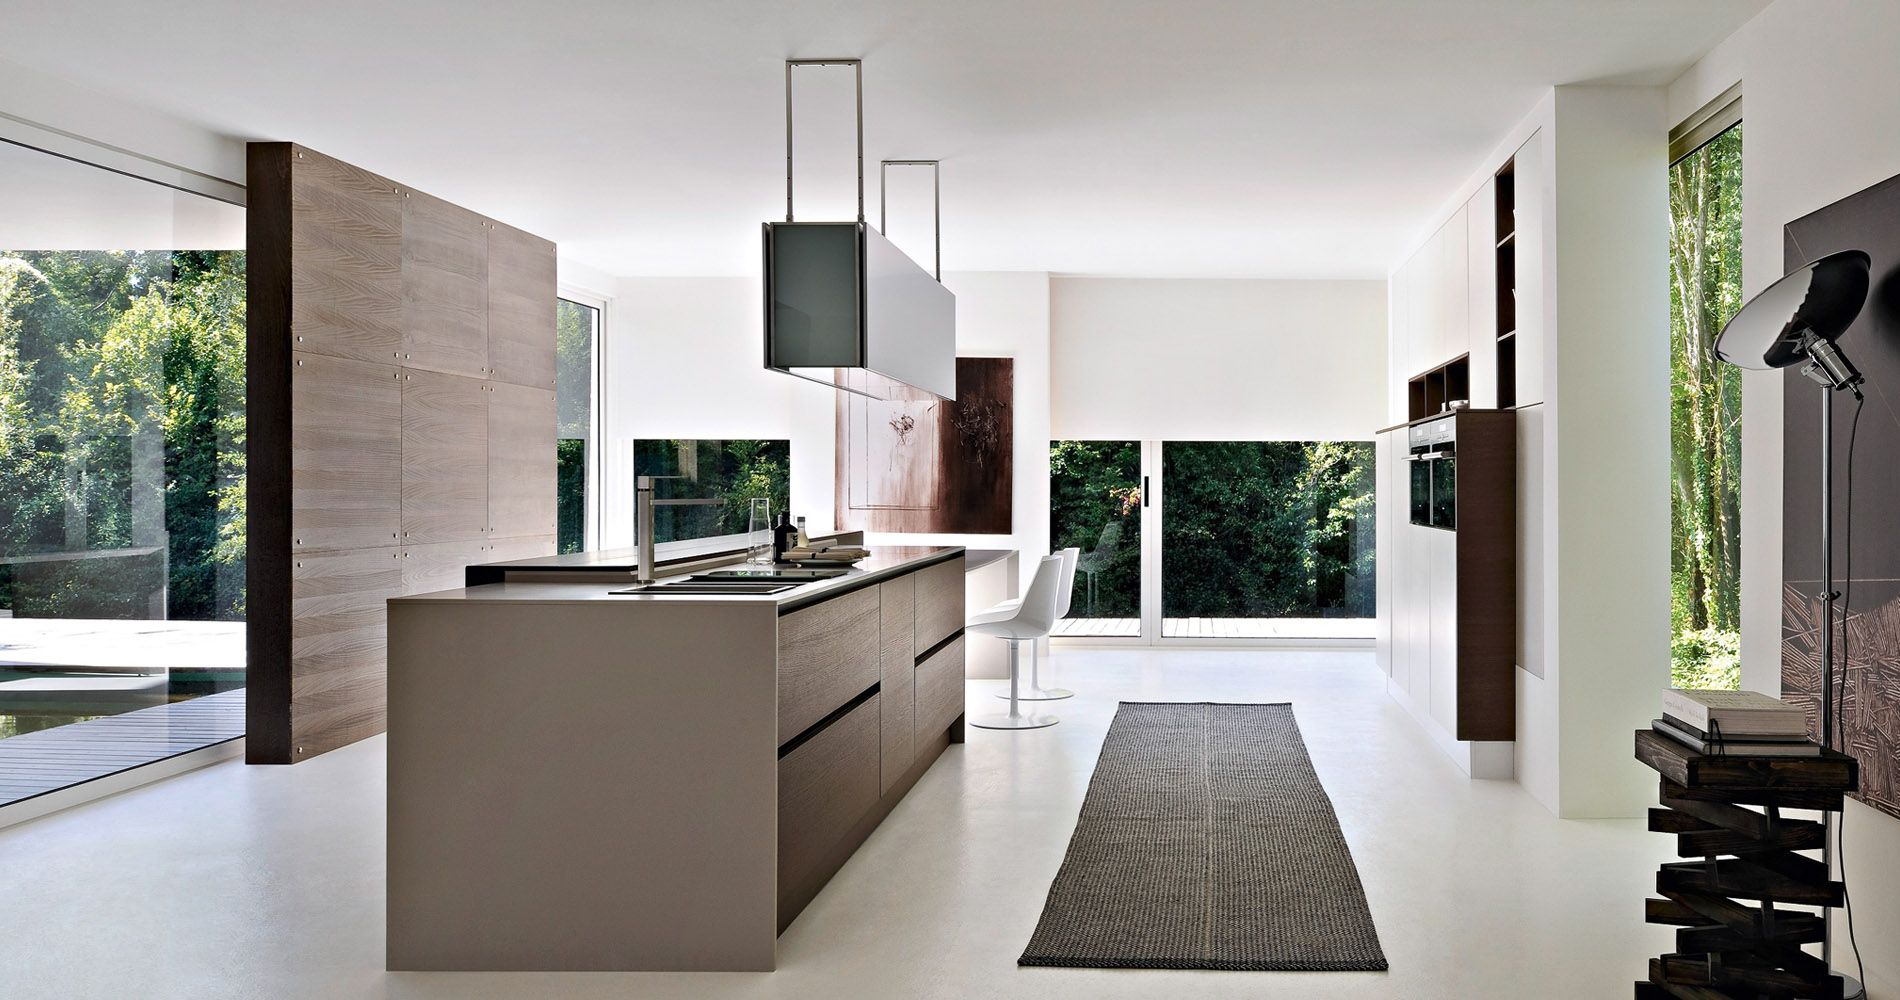 Schön Pedini Kitchen Design: Italian, German U0026 European Modern Kitchens.  Contemporary Kitchen Cabinetry,